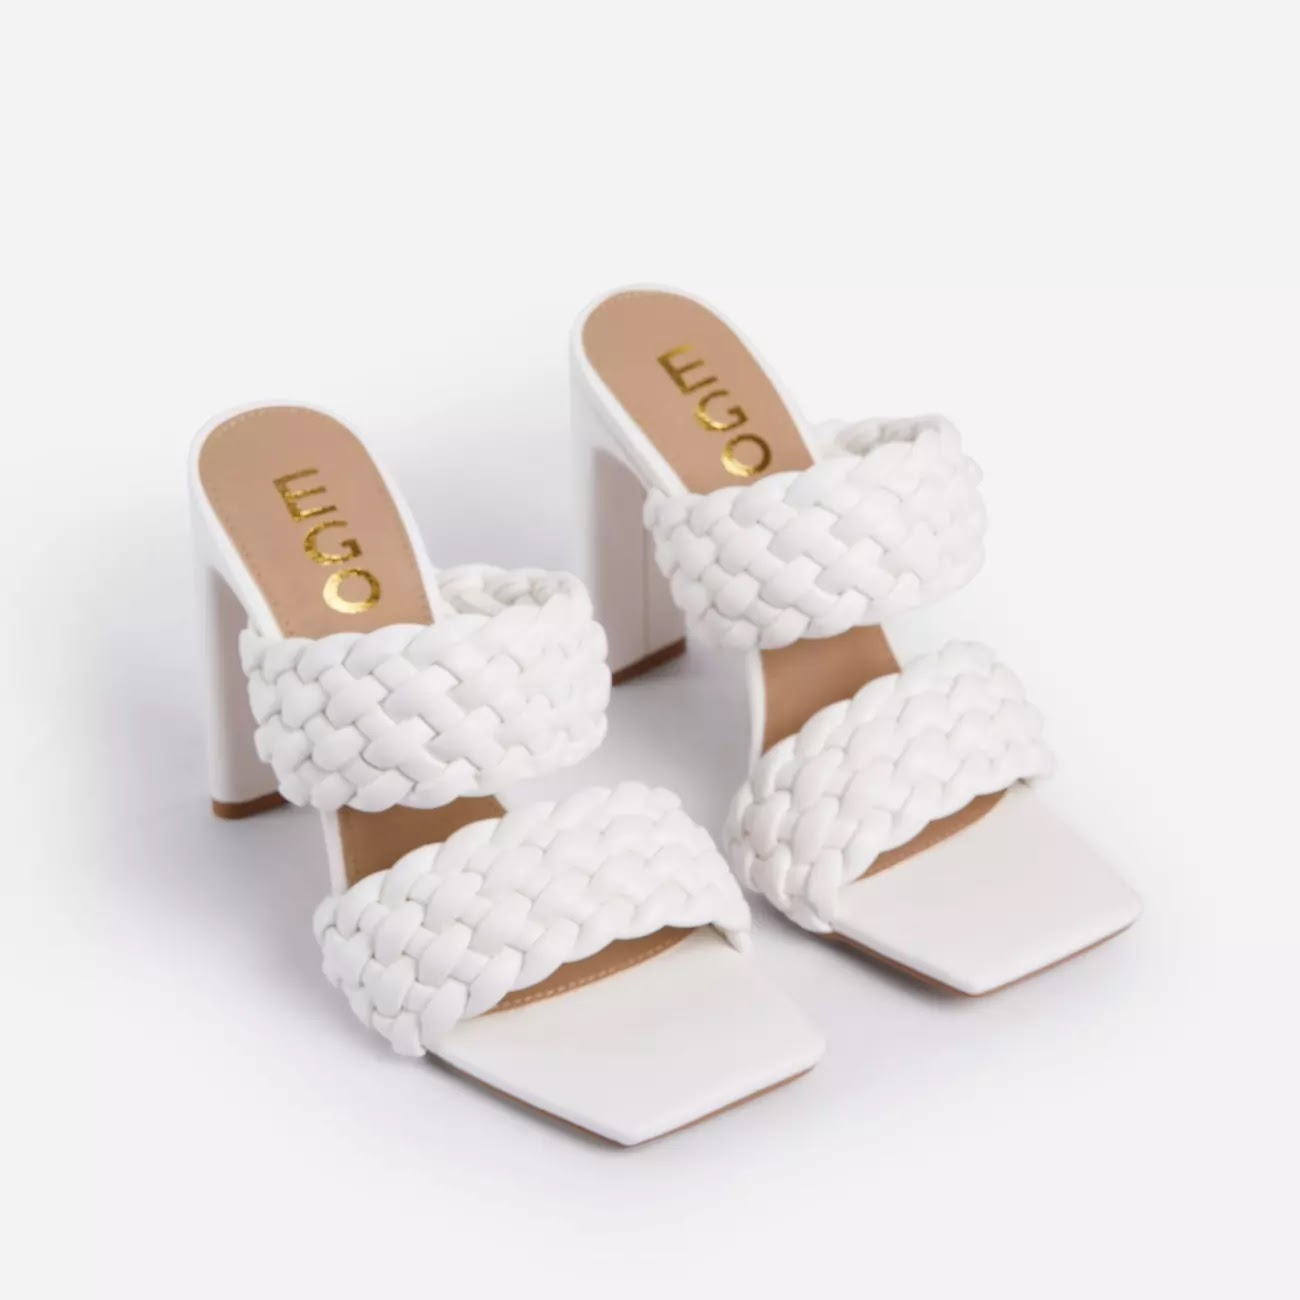 https://ego.co.uk/hab573-willa-woven-double-strap-square-toe-think-block-heel-mule-in-white-faux-leather.html?awc=7576_1598478619_93583b1da5bf6539b4983f1e1286b50d&utm_source=awin&utm_medium=affiliate&utm_campaign=637679